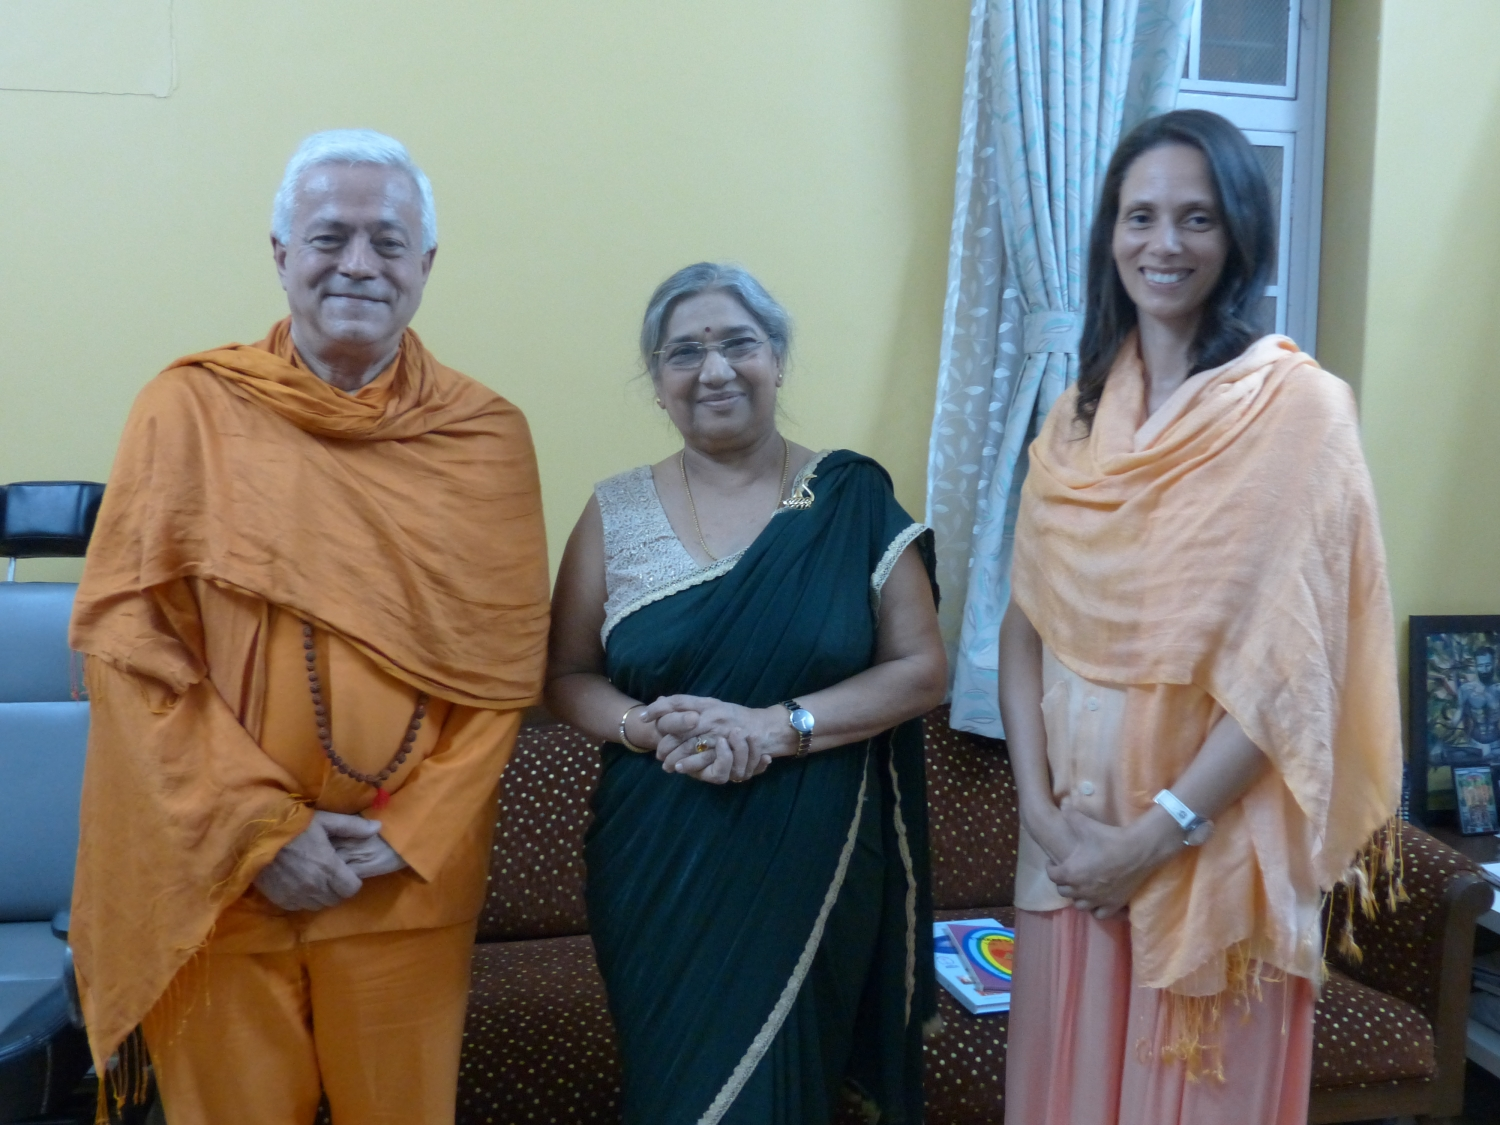 Com Smt. Hansaji Jayadeva Yogendra - The Yoga Institute of Santa Cruz, Mumbai, Índia - 2016, Janeiro